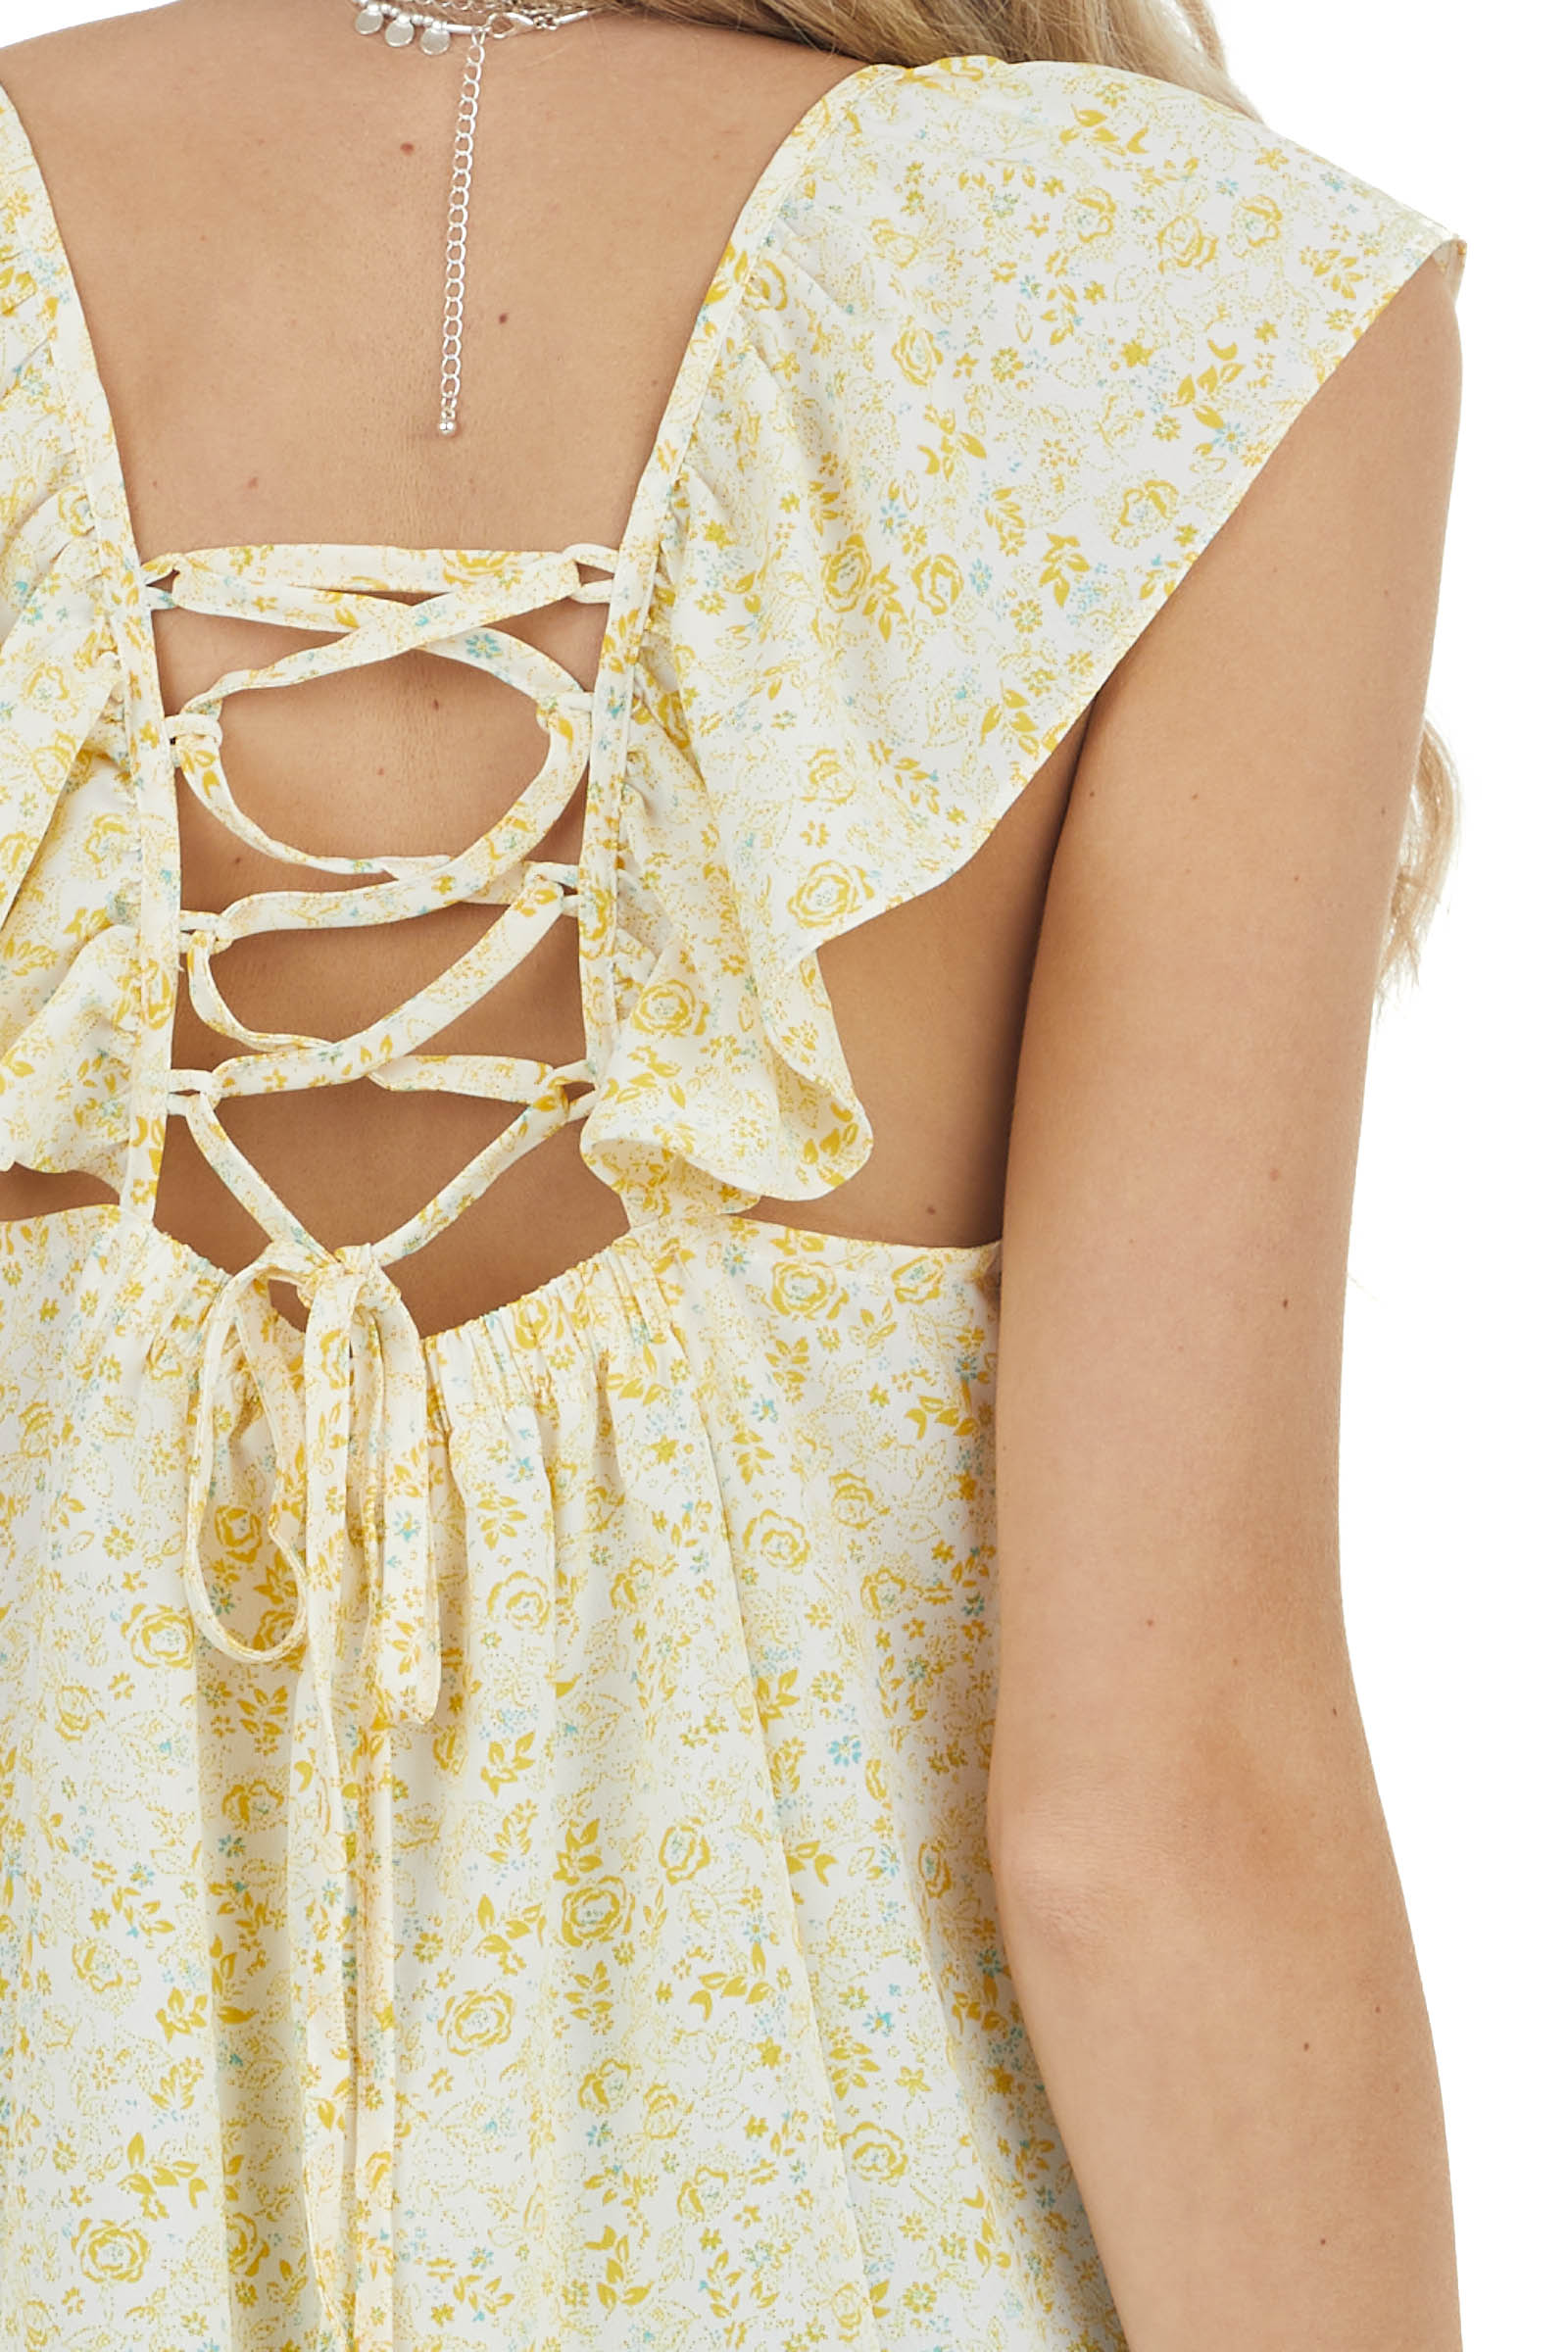 Amber and White Floral Print Top with Lace Up Back Detail